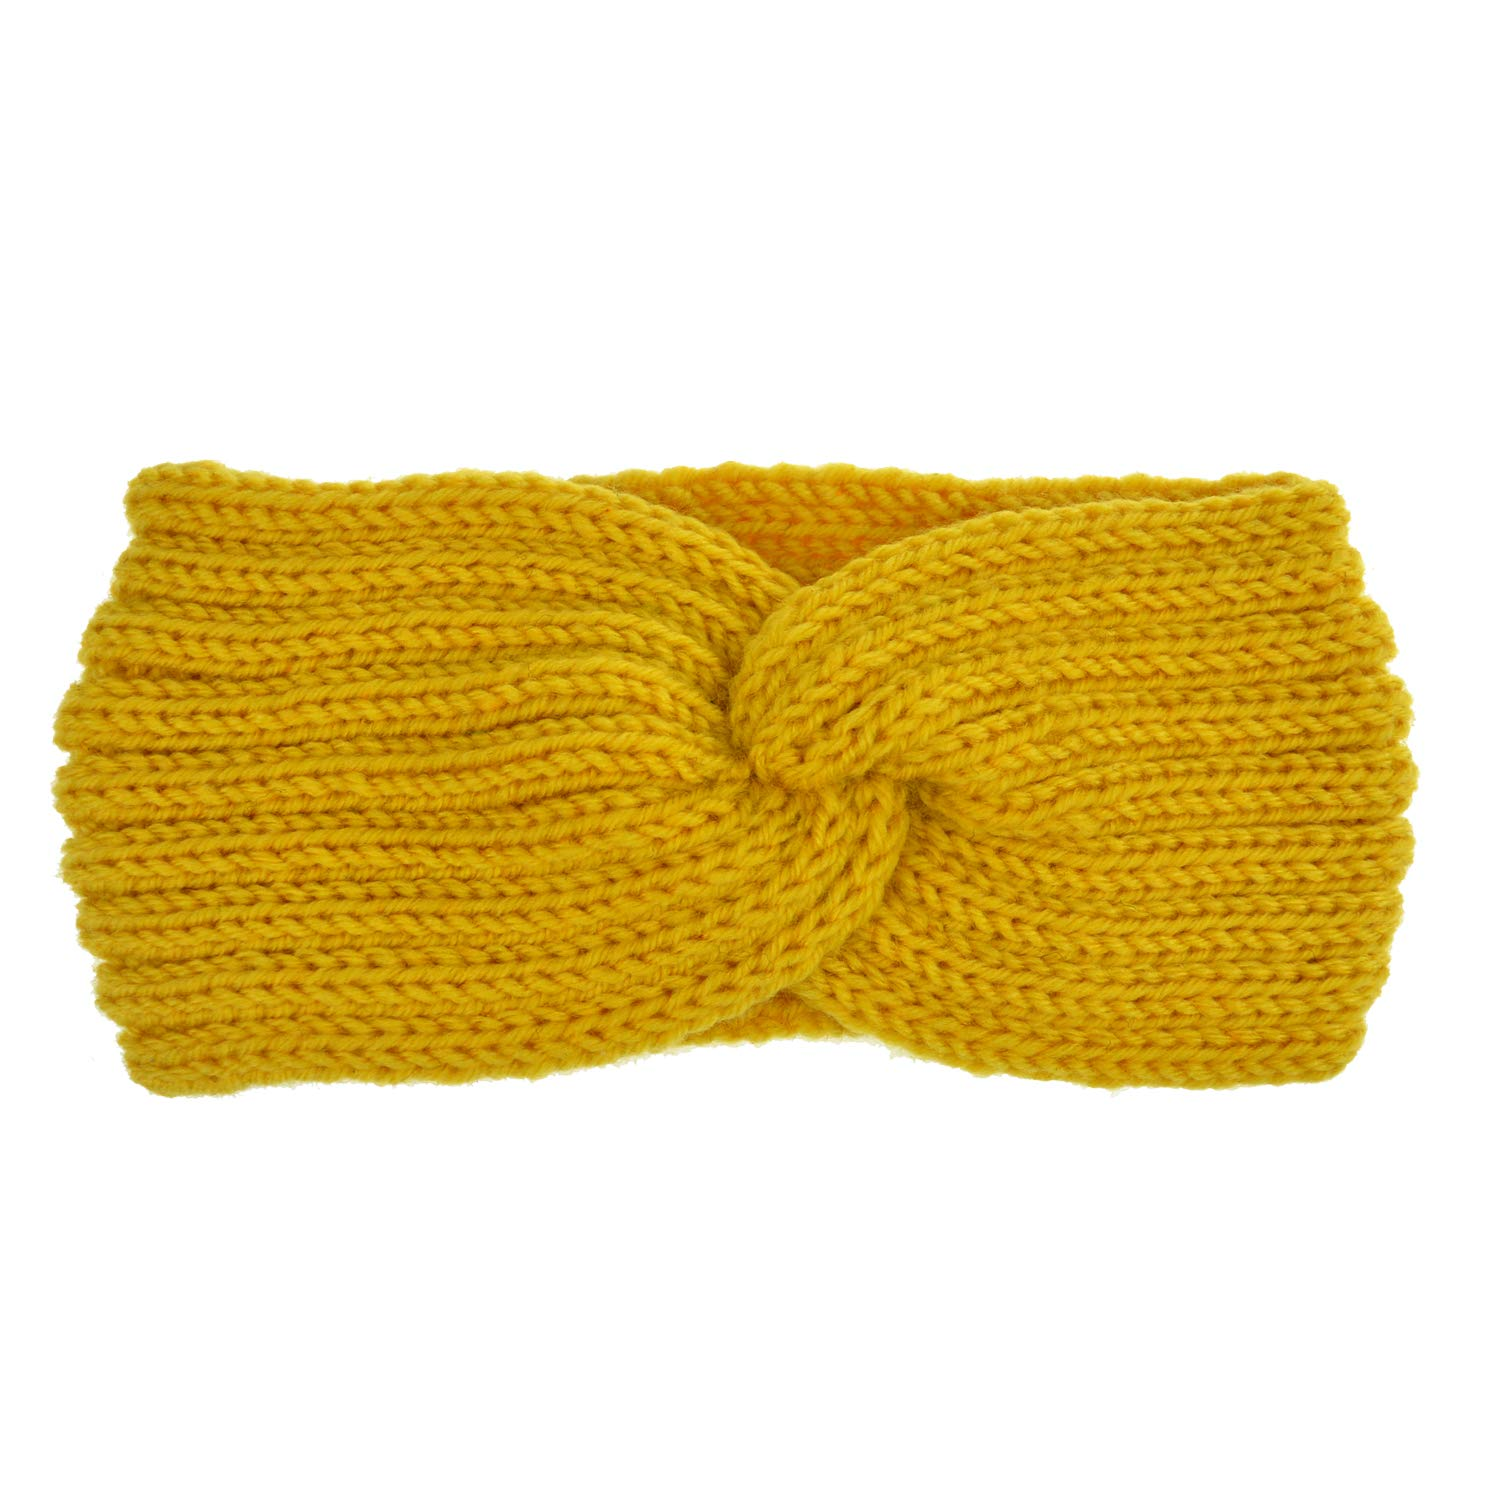 Cashmere Solid Color Elastic Crochet Knitted Cross Headband Headwrap Hairband